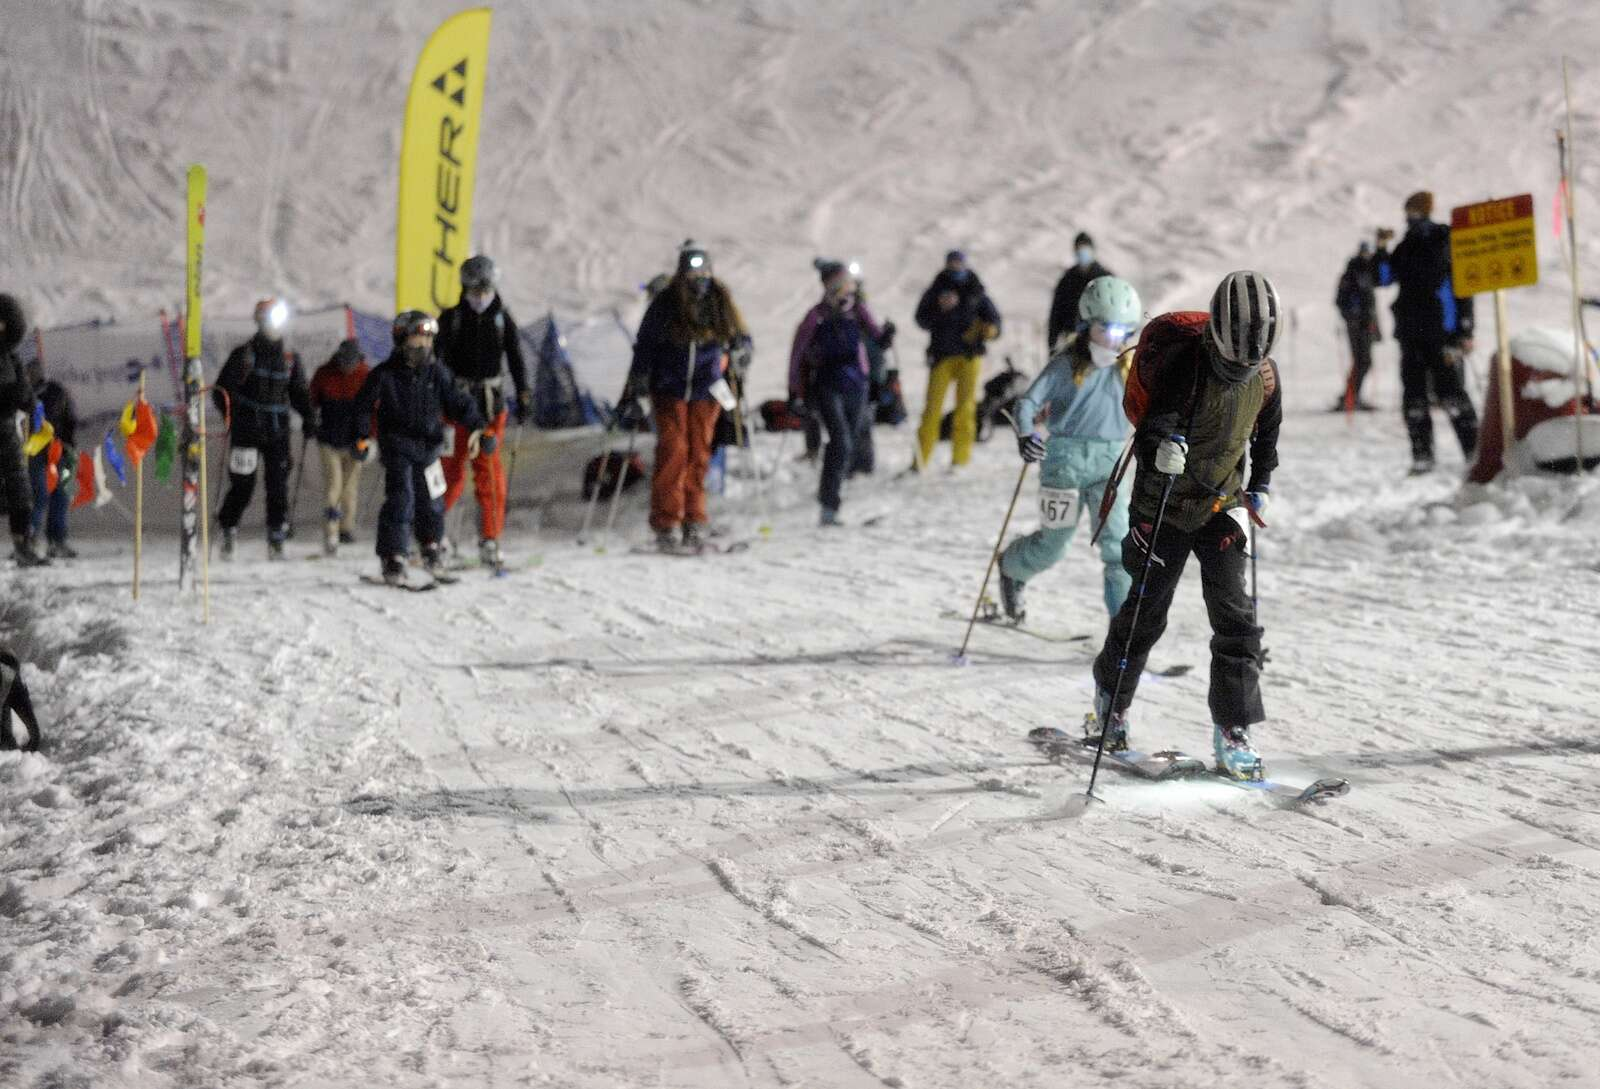 The first race of the 2022-21 Ski Ascent Series was Wednesday evening at Howelsen HIll. A record 62 people participated in the circuit-style race.